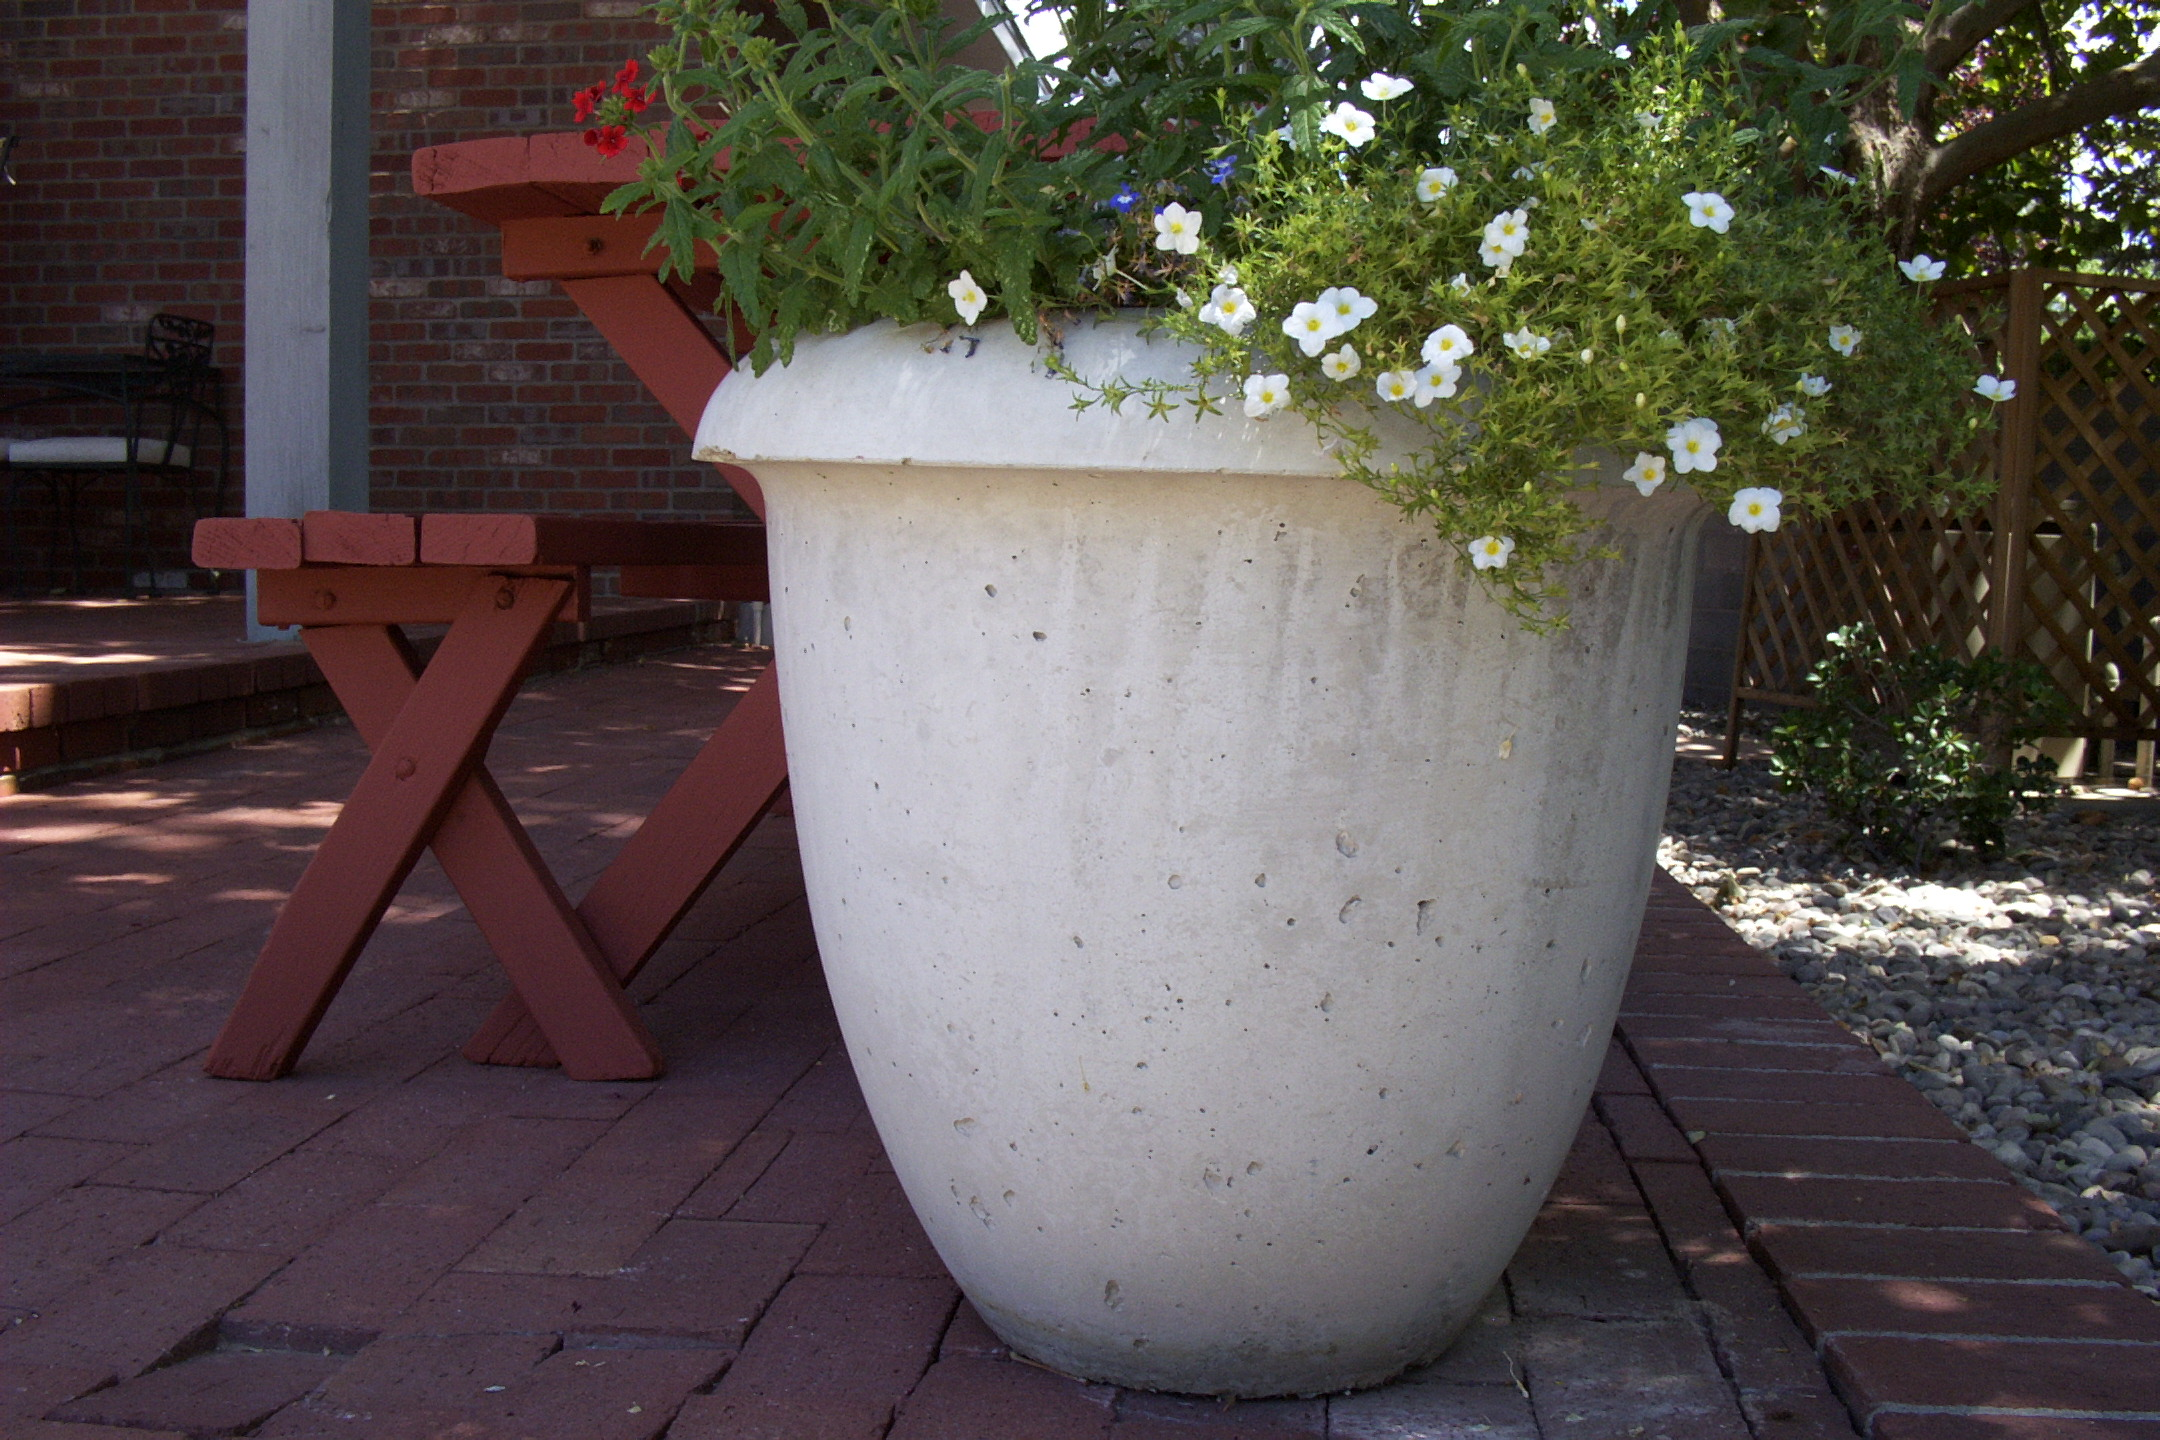 Mesa Precast - Planters in Range of Shapes and Colors as Well